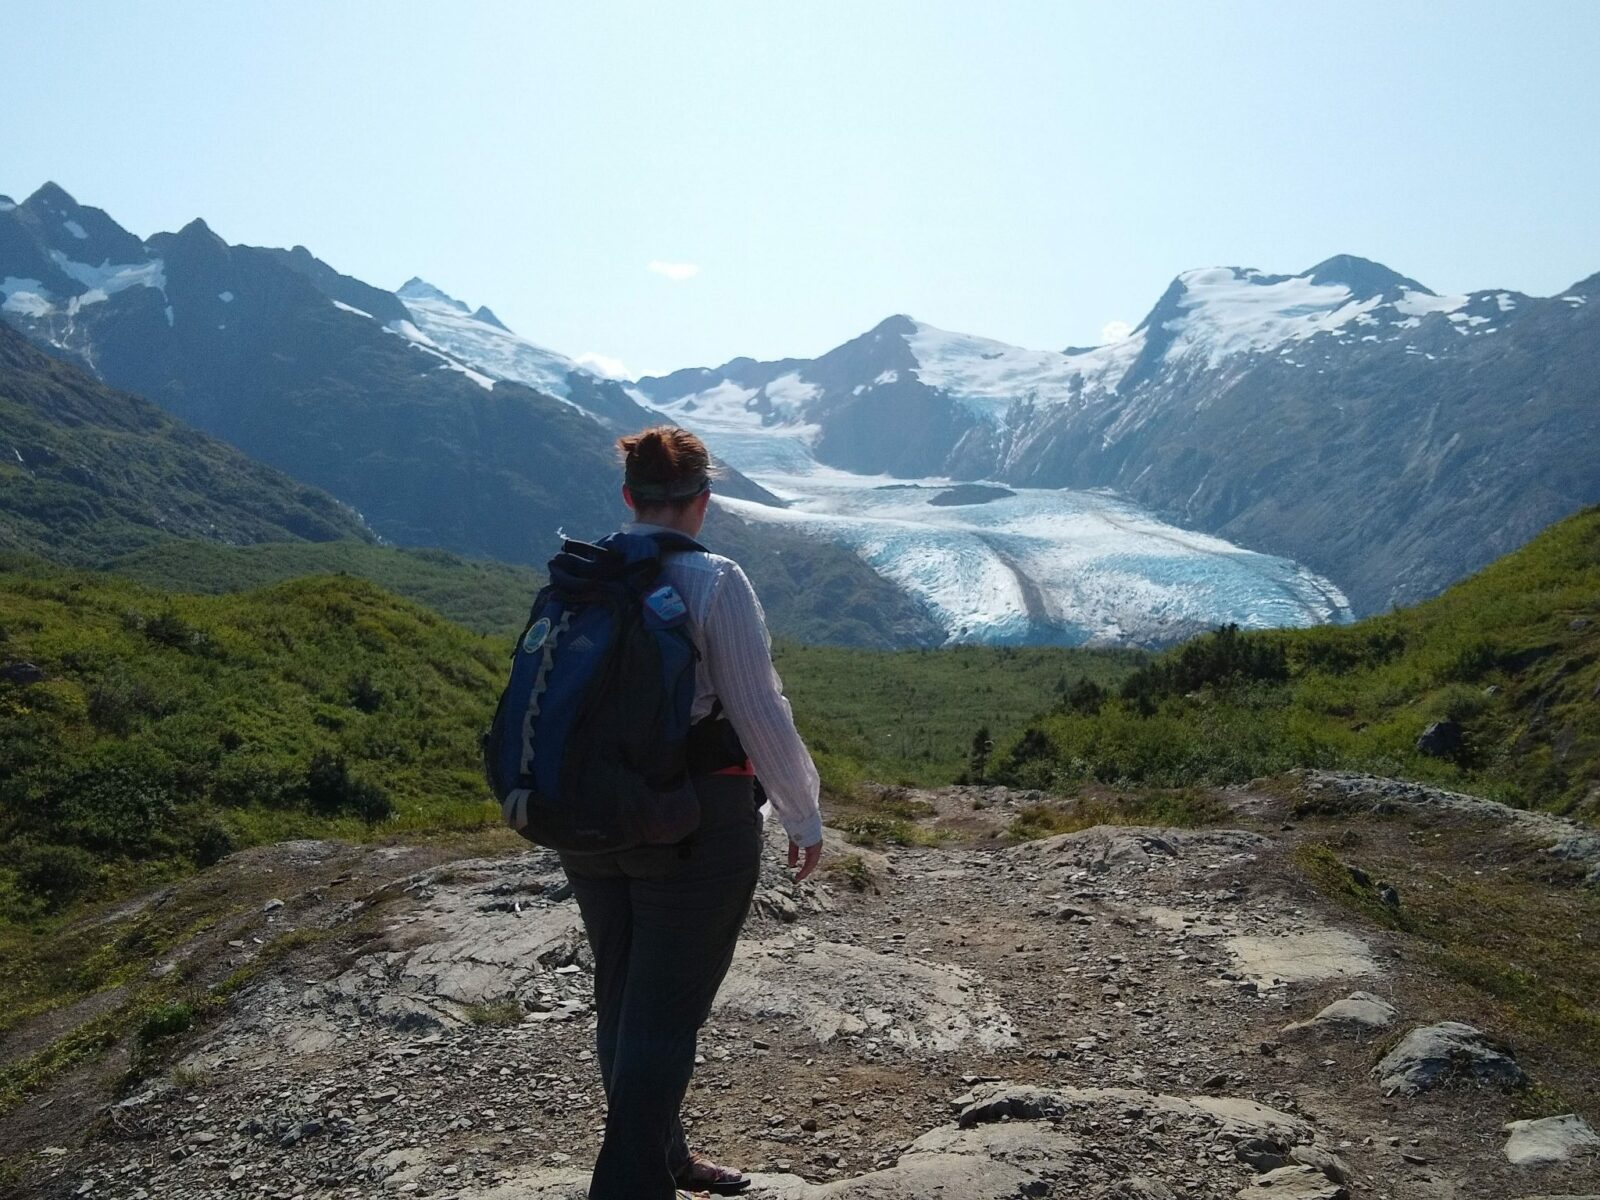 Portage Glacier in the distance from Portage Pass. A hiker stands near the trail facing away toward the glacier. It is a sunny day and there are high mountains surrounding the glacier and rocks and green shrubs surrounding the hiker